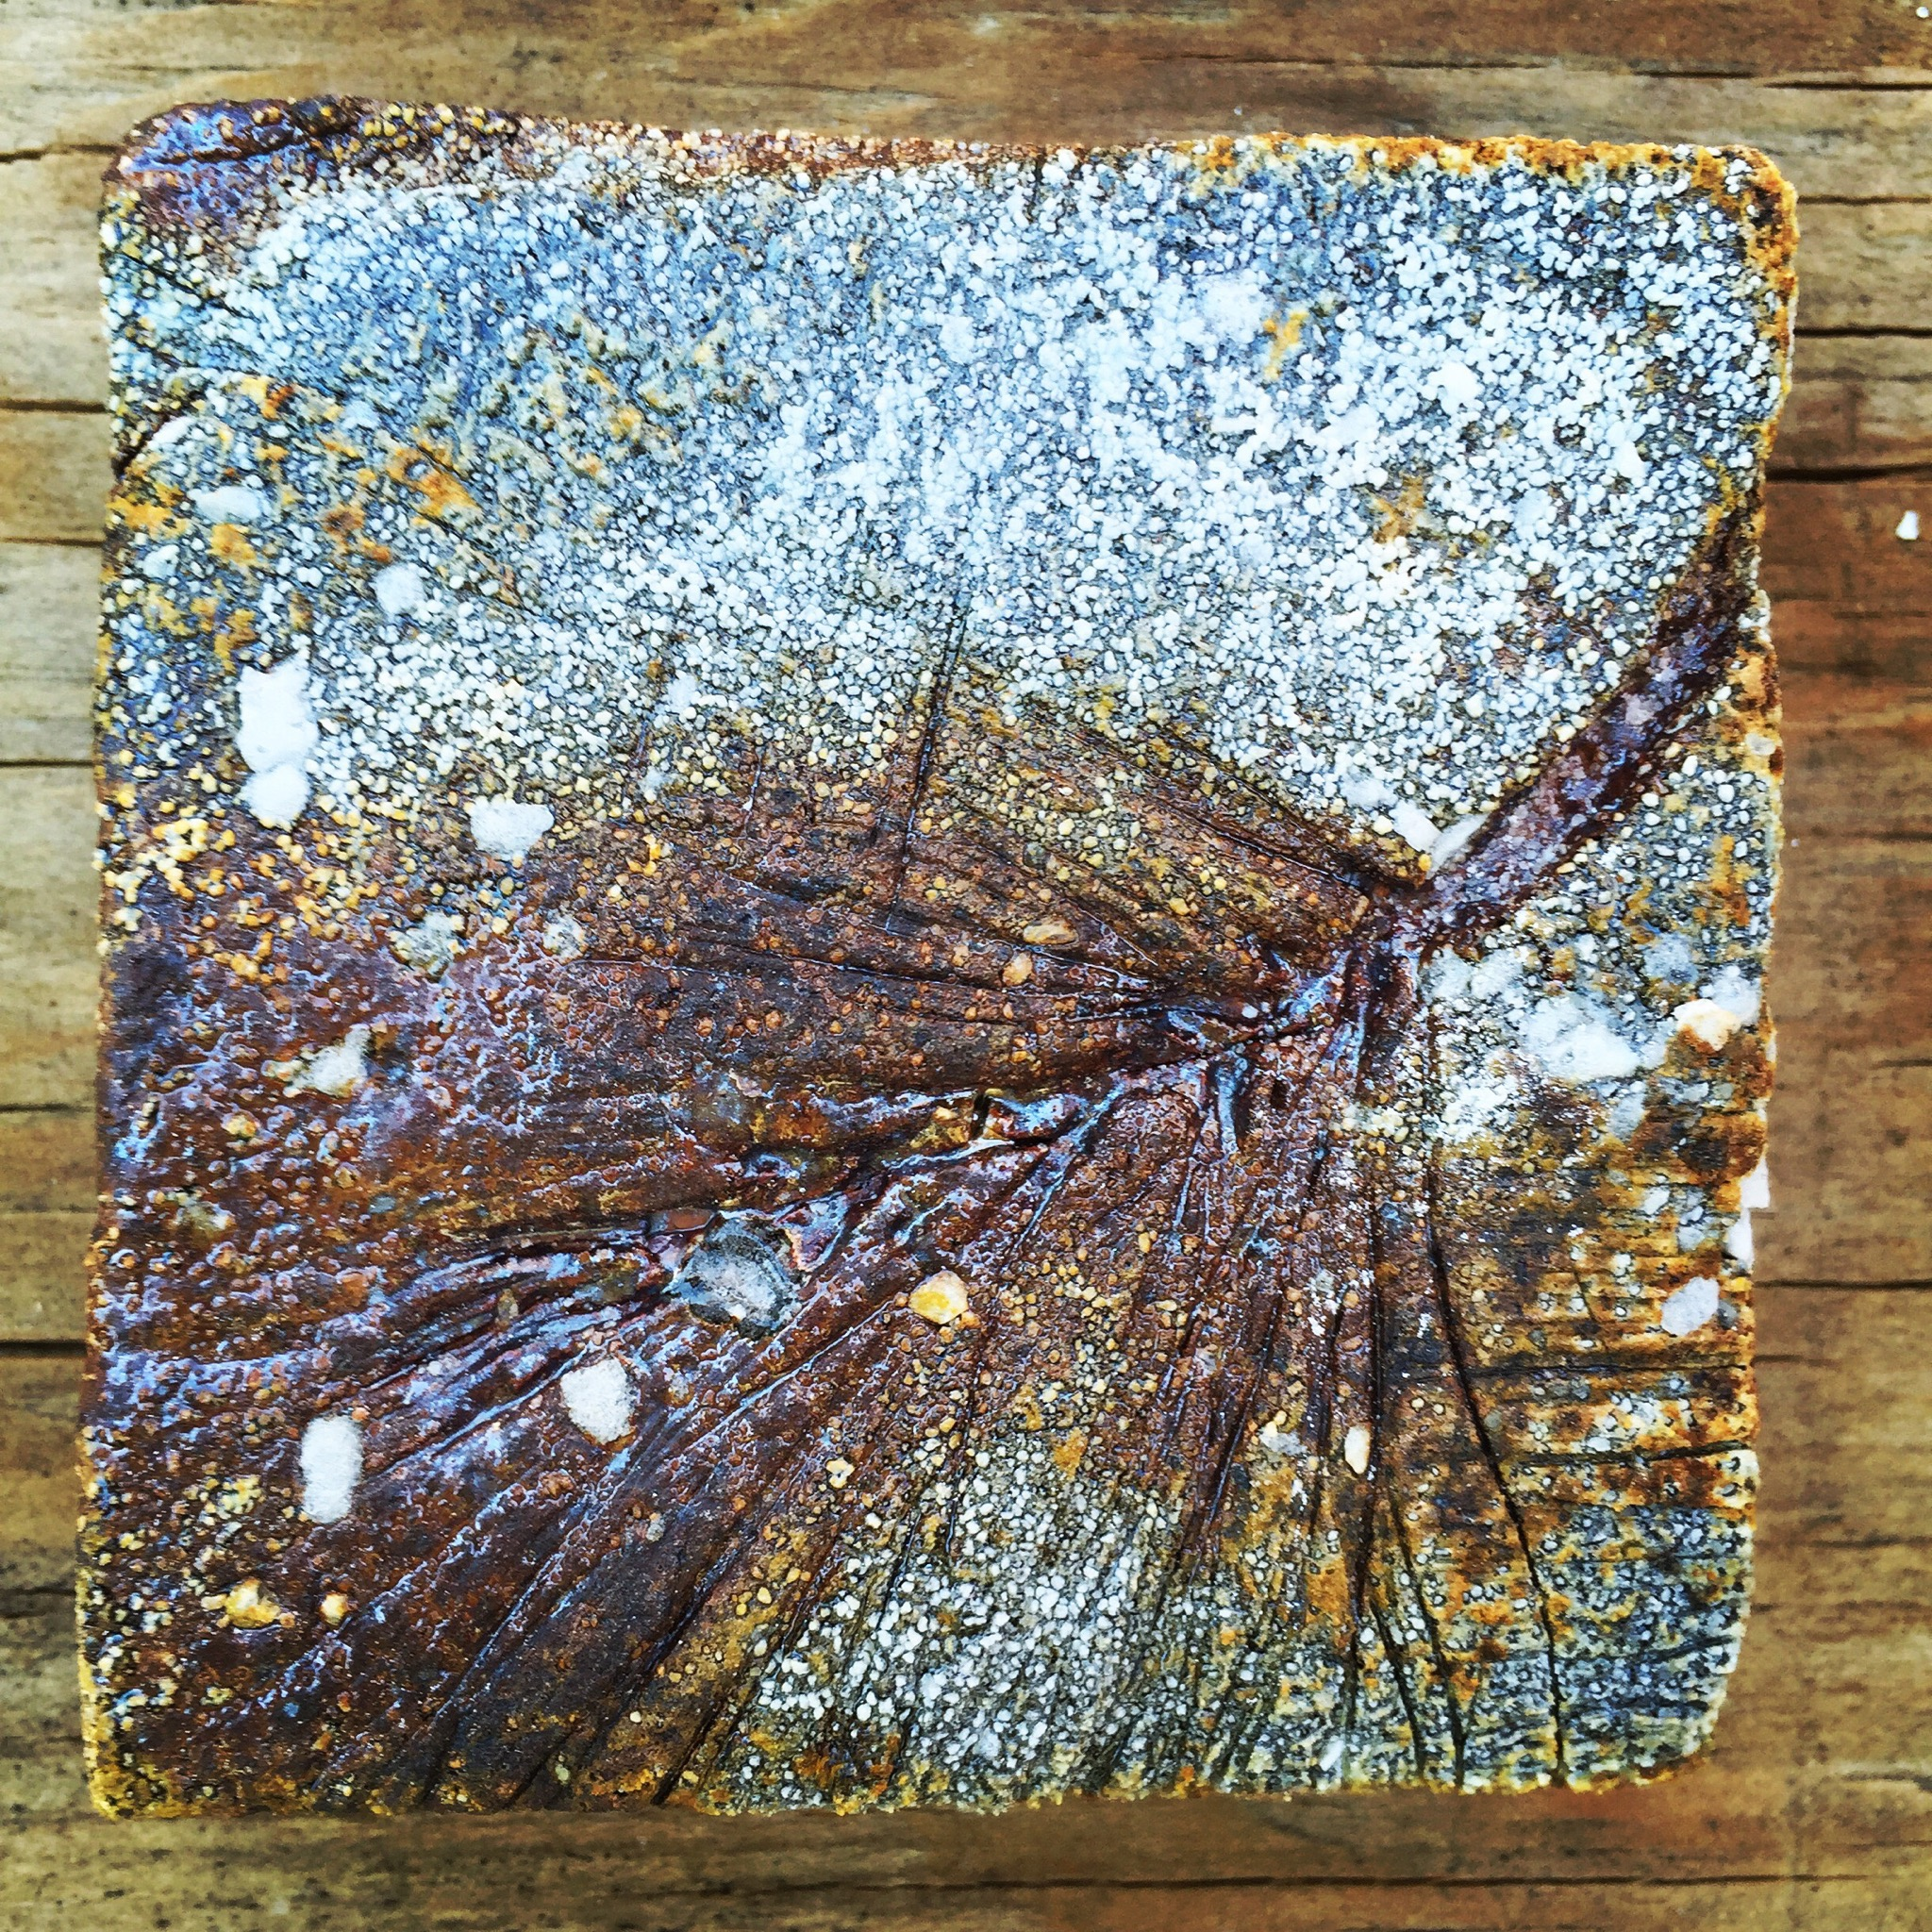 ©Photograph by Shelita Birchett Benash  Handmade wood fired ceramic tile. Work in progress. One of 200 ceramic tiles that were fired at Tony Moore's April wood firing. Several thousand more to go! I'm working on a large scale handmade ceramic tile project. Looking forward to many, many more wood firings, gas reduction and alternative firings...The beauty lives within the process...patience...Gratitude.  Check out my blog for more about the April wood firing at Tony Moore's anagama/ noriborigama Japanese style kiln in Coldspring, NY.